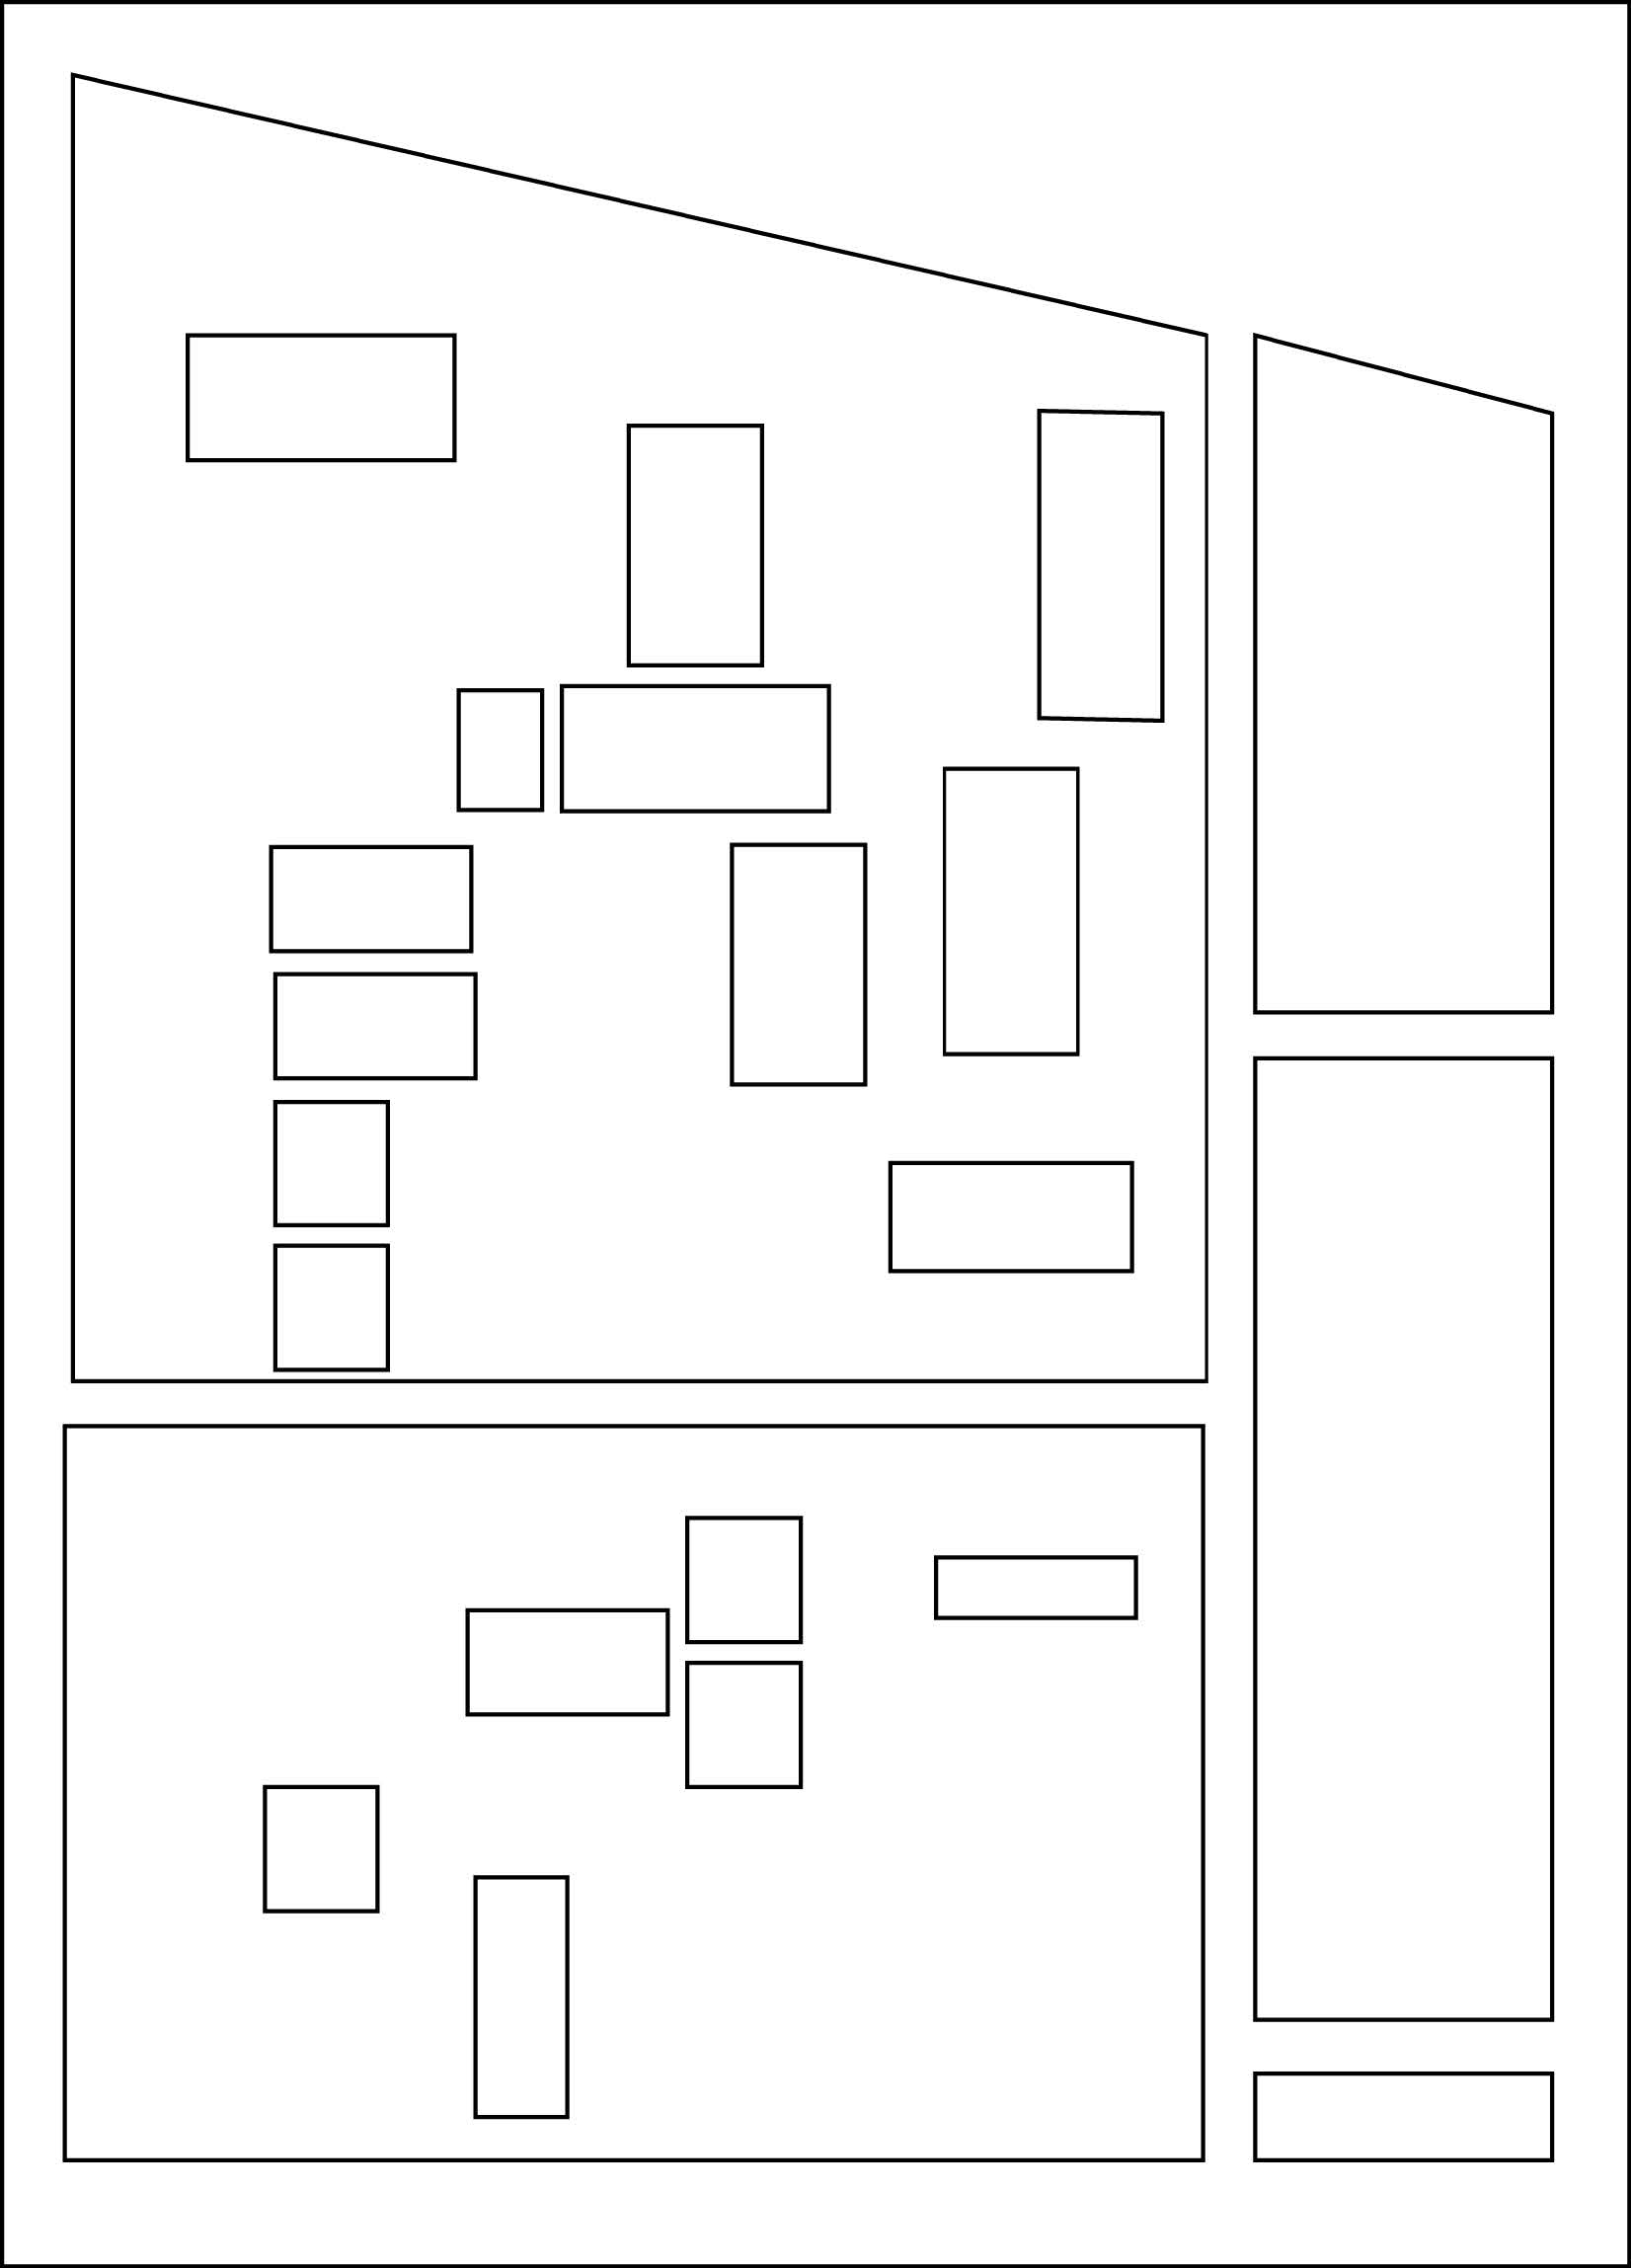 Compositional grid based on aerial grid of palace of Chief in Logone-Birni, Cameroon